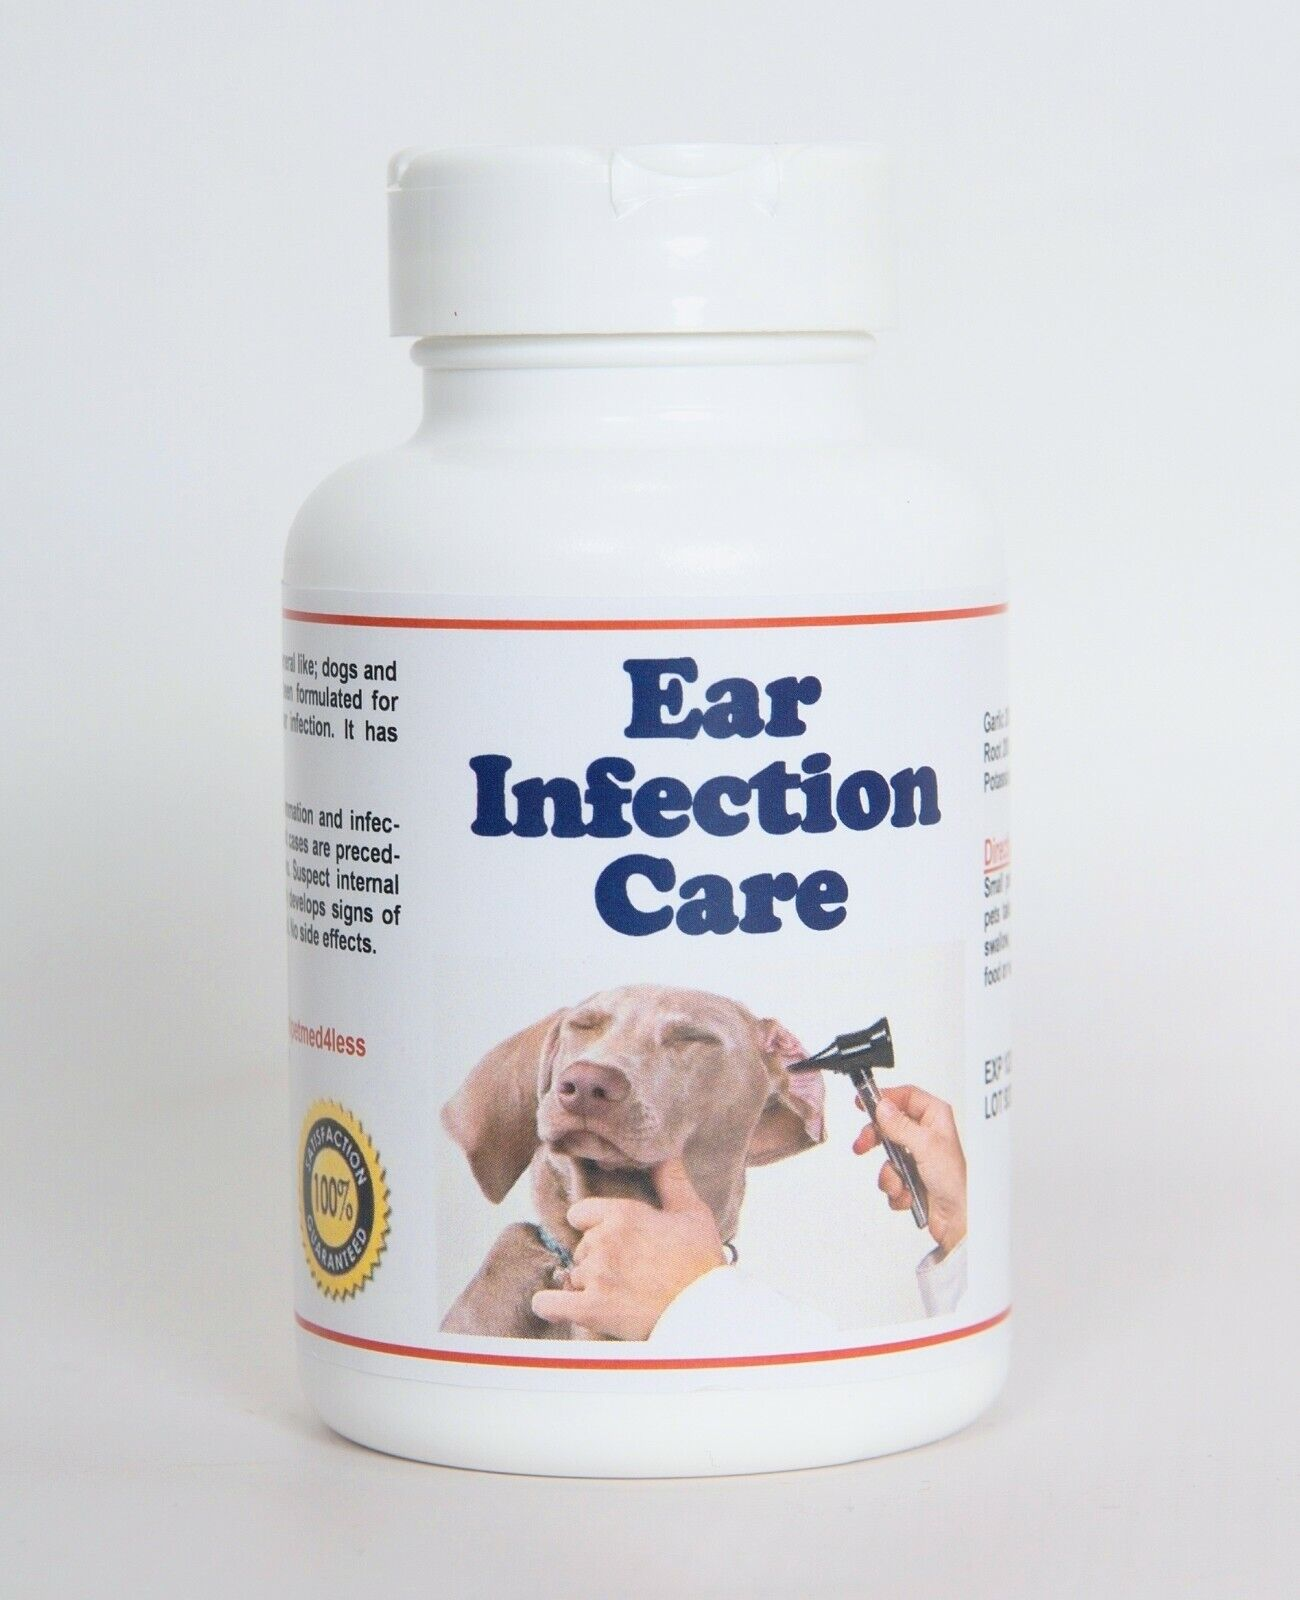 EAR INFECTION CARE FOR PETS - Dogs and Cats - OTITIS - BUY CHEAPLY PAY DEARLY